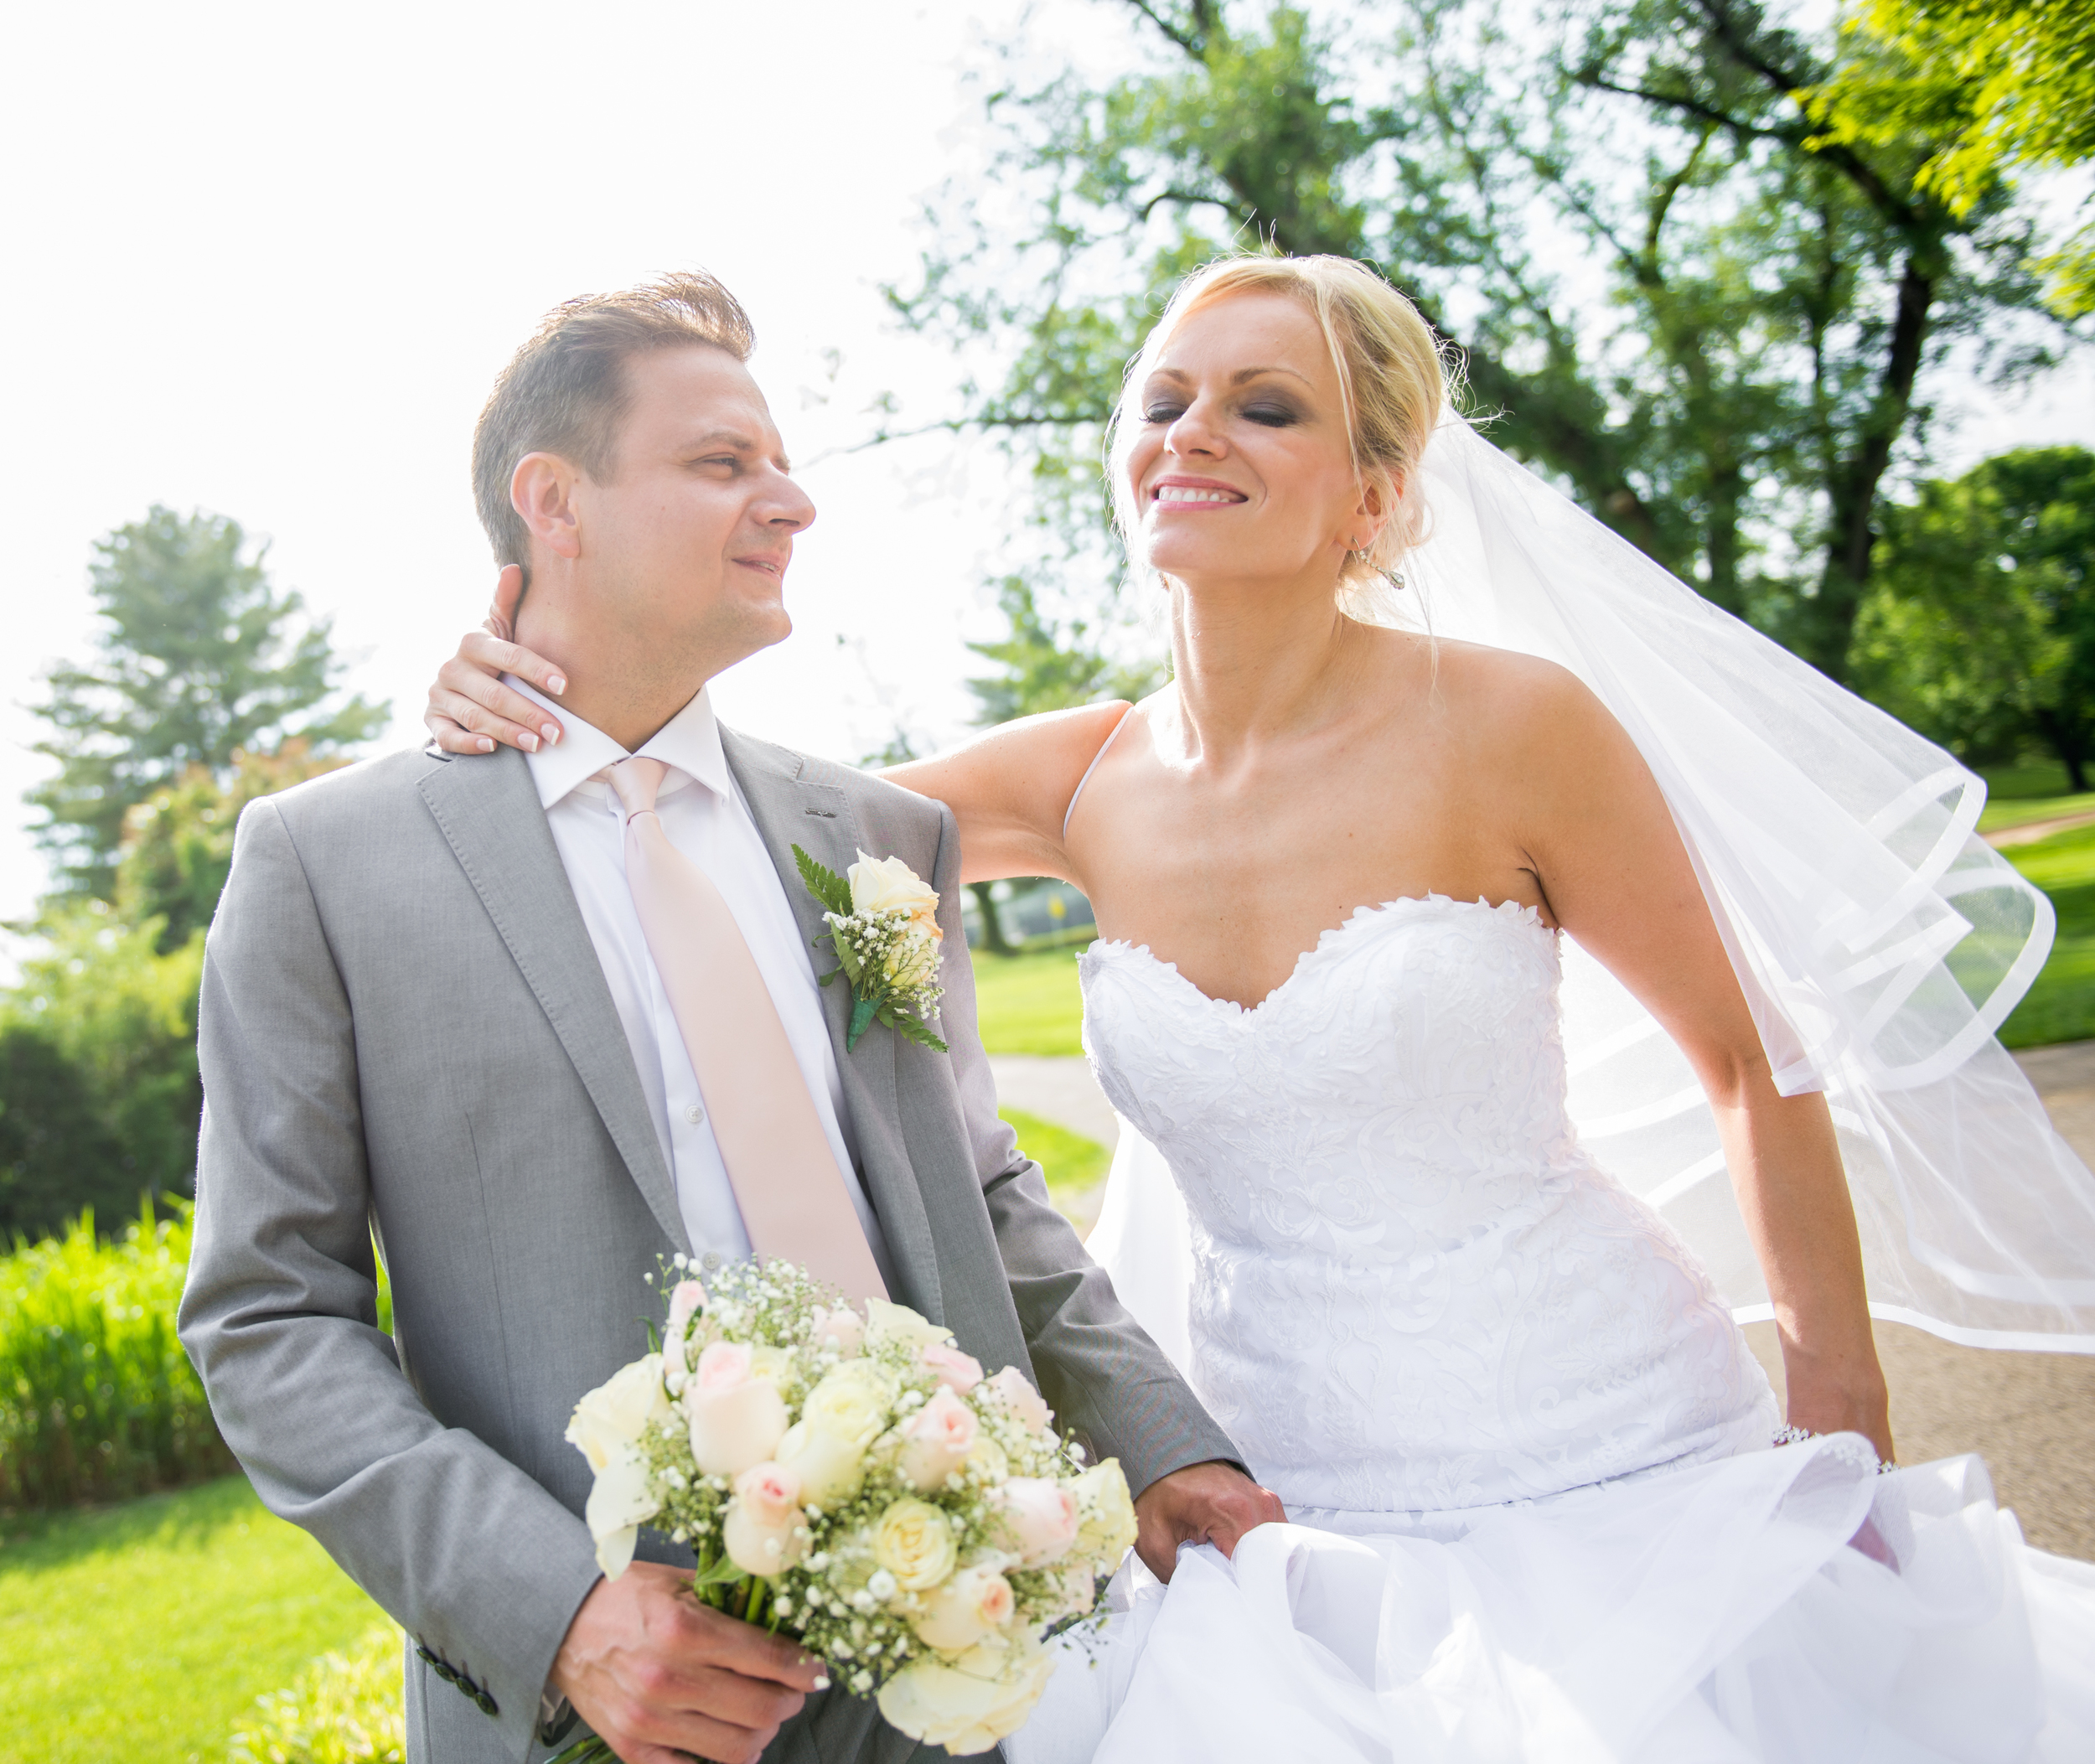 034Koper-Ekiert-Roanoke-Wedding-Virginia-Photographer-mattrossphotography.com.jpg